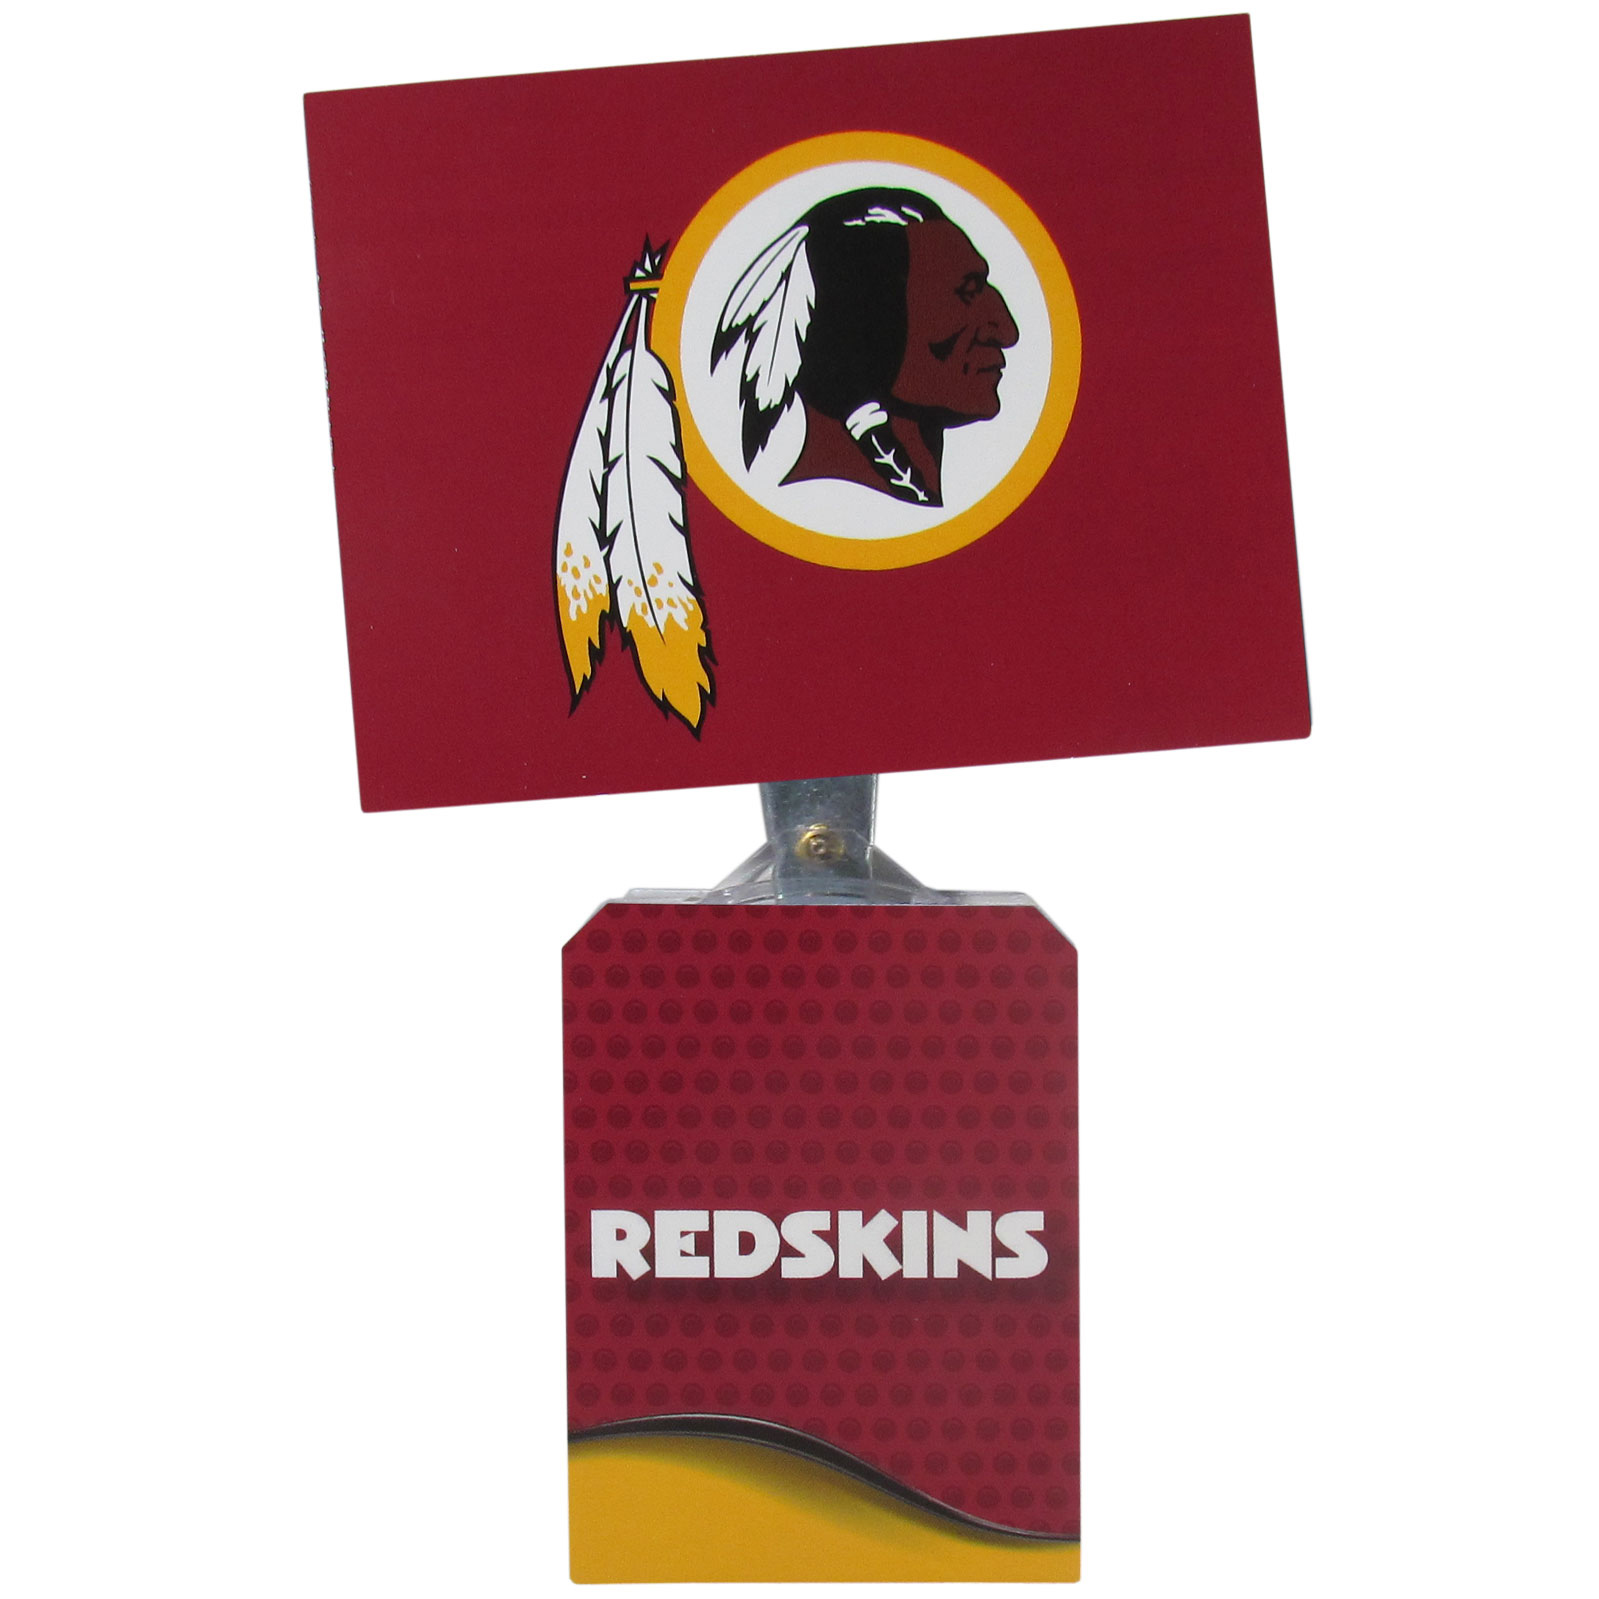 Washington Redskins Solar Flags - Get pumped up on the way to game with Siskiyou's Chicago Bears Washington Redskins Solar Flag that mounts to your dashboard or window. The in-motion solar flag also doubles as decoration for your tailgate or homegate! The base of the flag is 3 inches tall and the flag is 4 inches making the entire in-motion solar flag stand at 7 inches tall. Keep your spirit moving with your favorite team's Solar Flag.